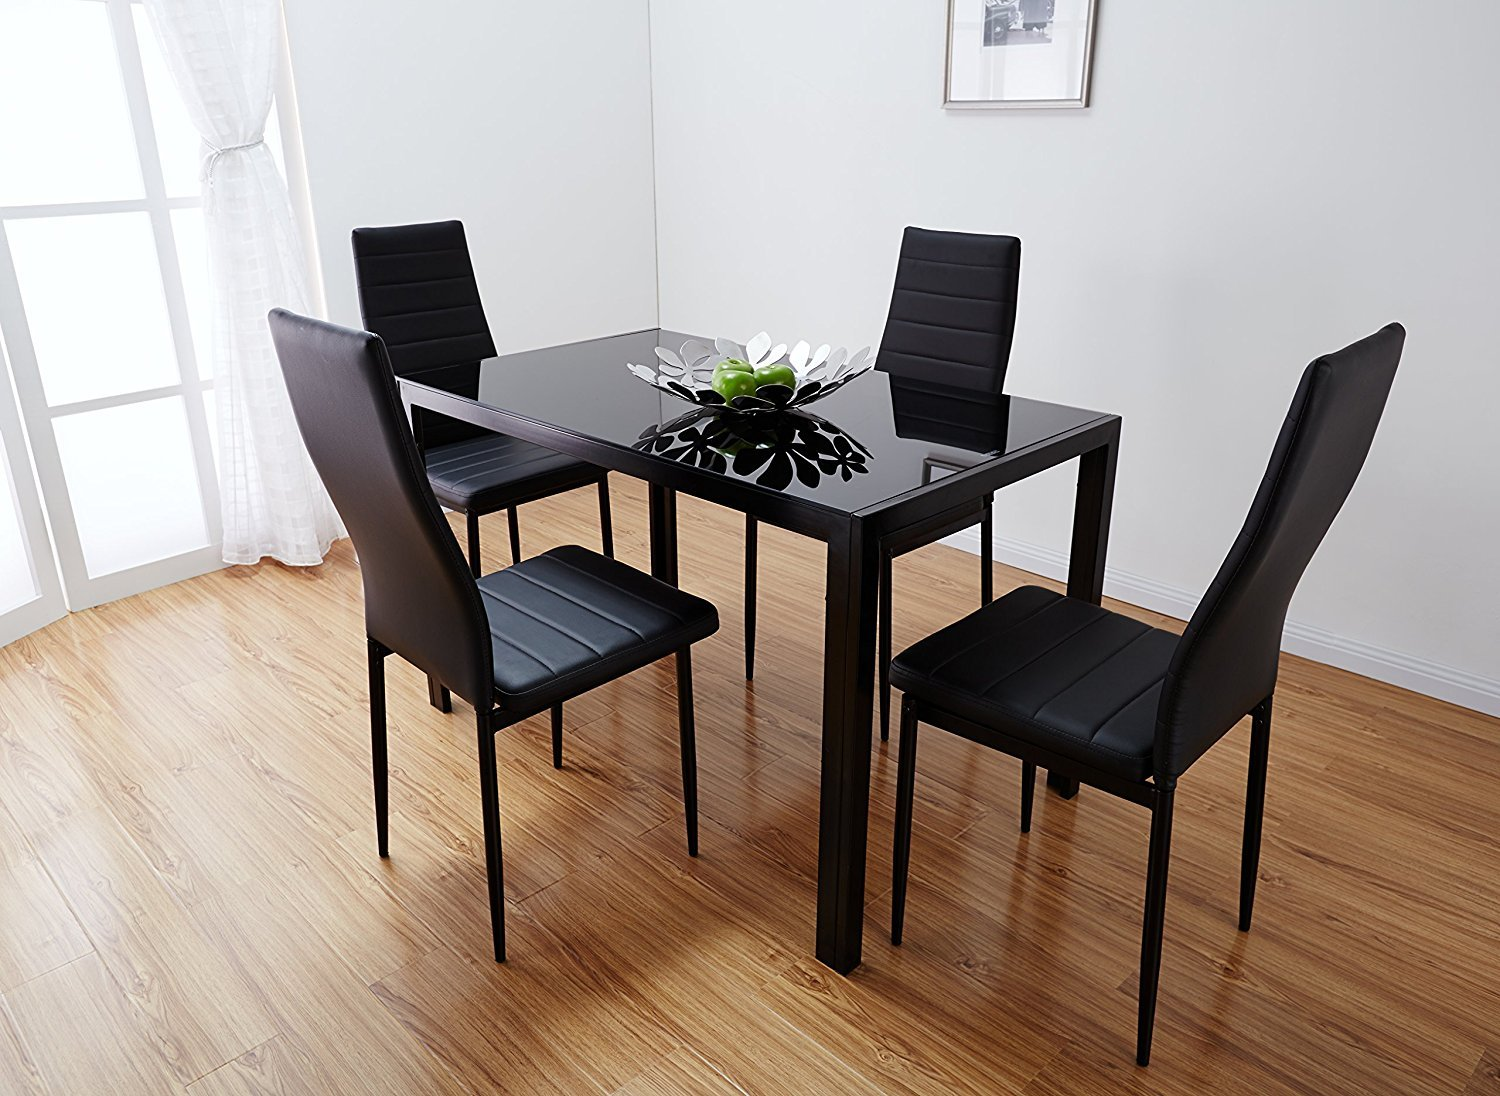 3c92c5de71e24 5 Pcs Modern Dining Table Set Glass Top and 4 Leather Chair Home Furniture  Black